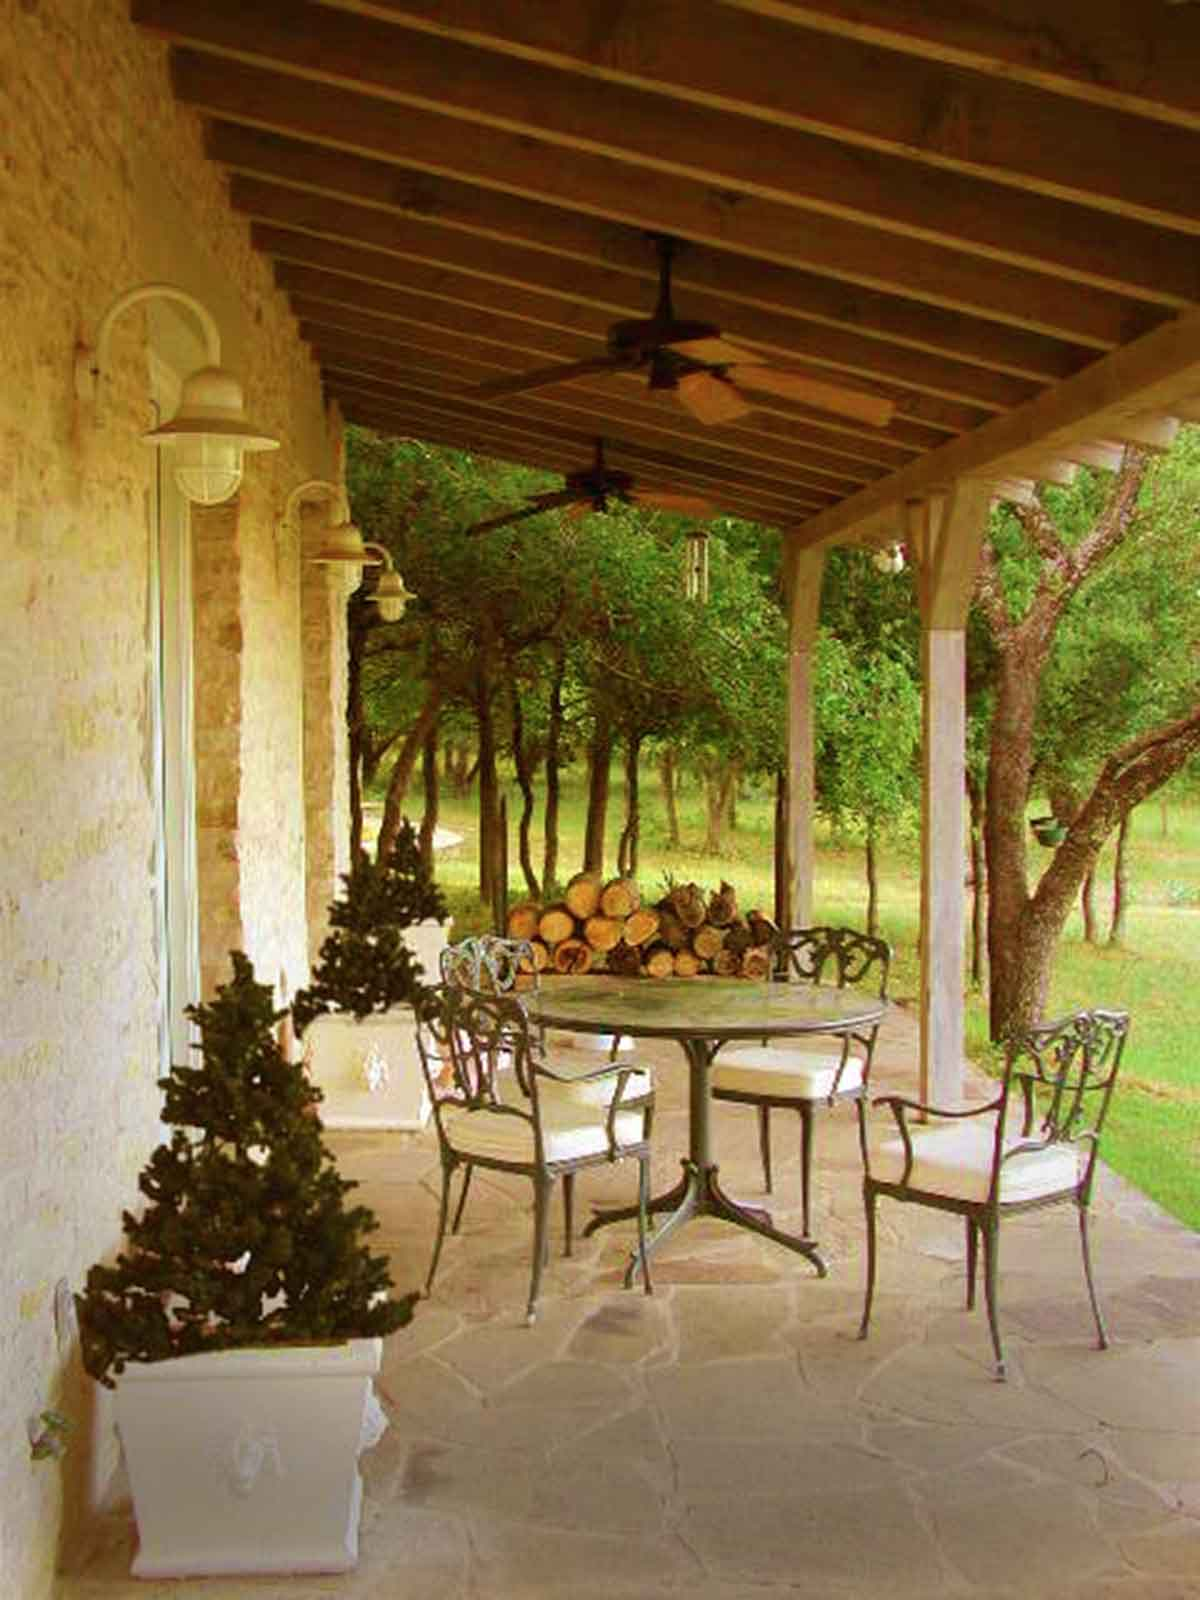 Front Veranda - A Great Place to Relax and Enjoy the Views